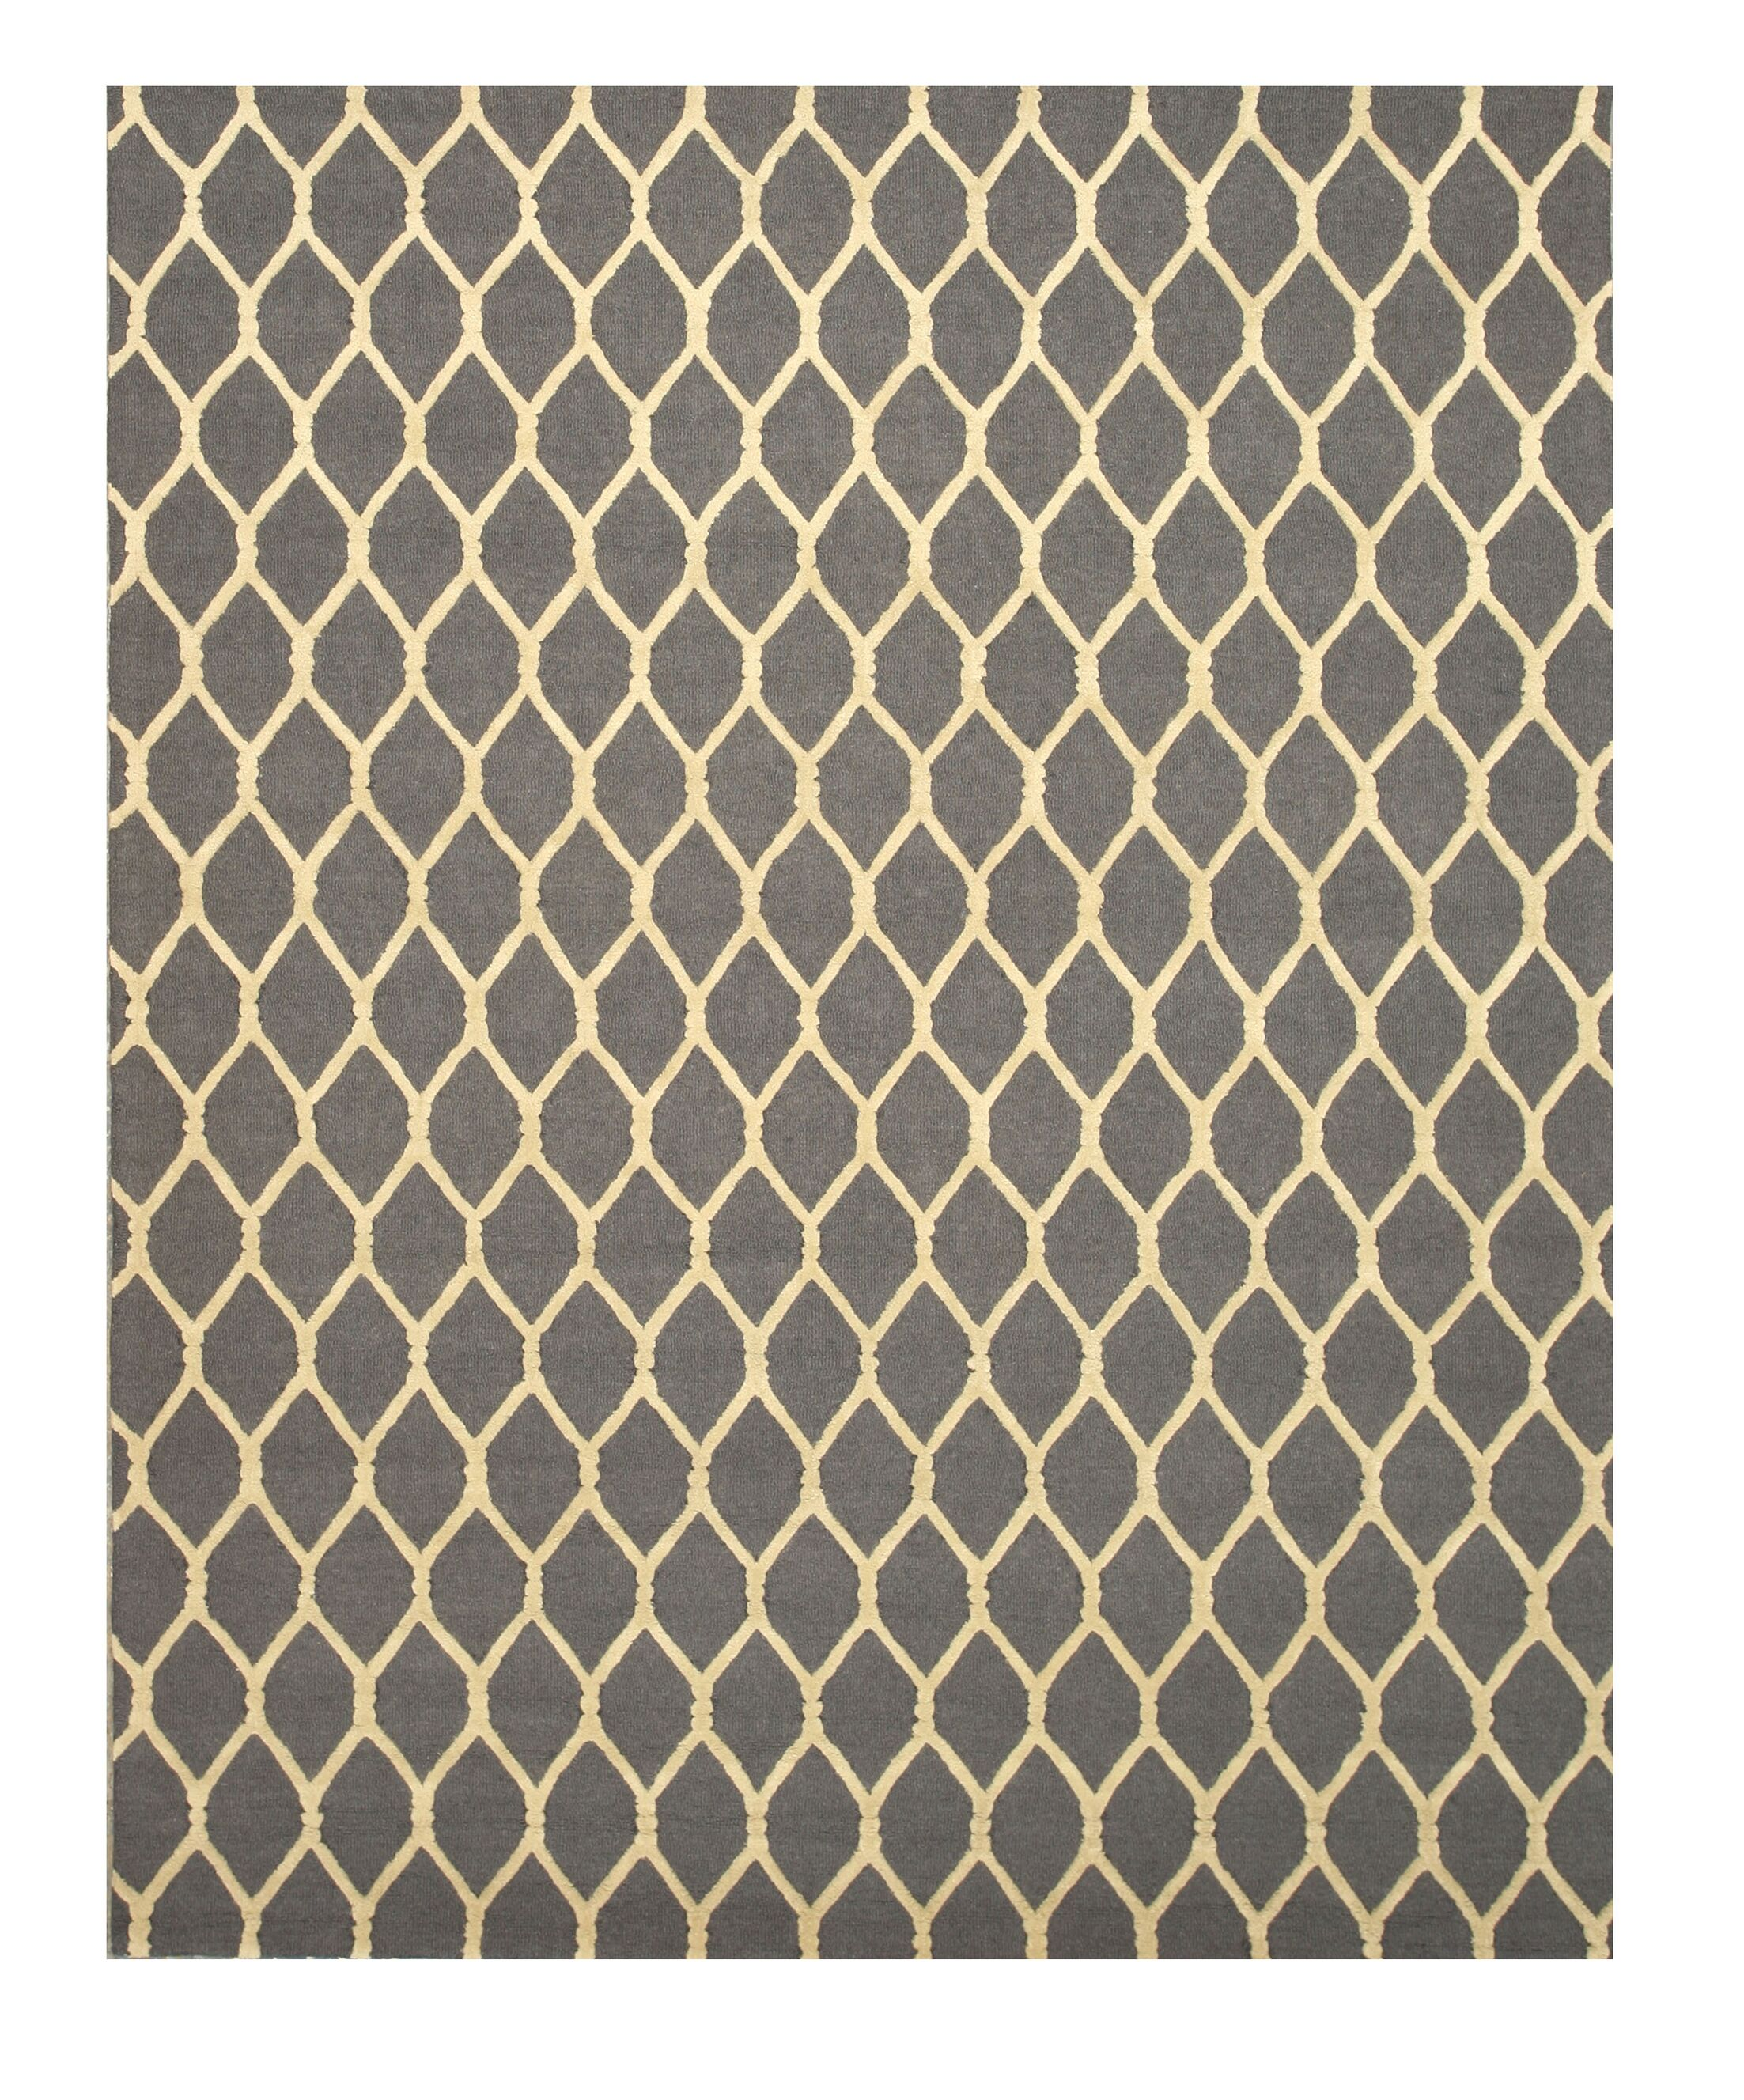 Hand-Tufted Charcoal Area Rug Rug Size: Rectangle 8'9